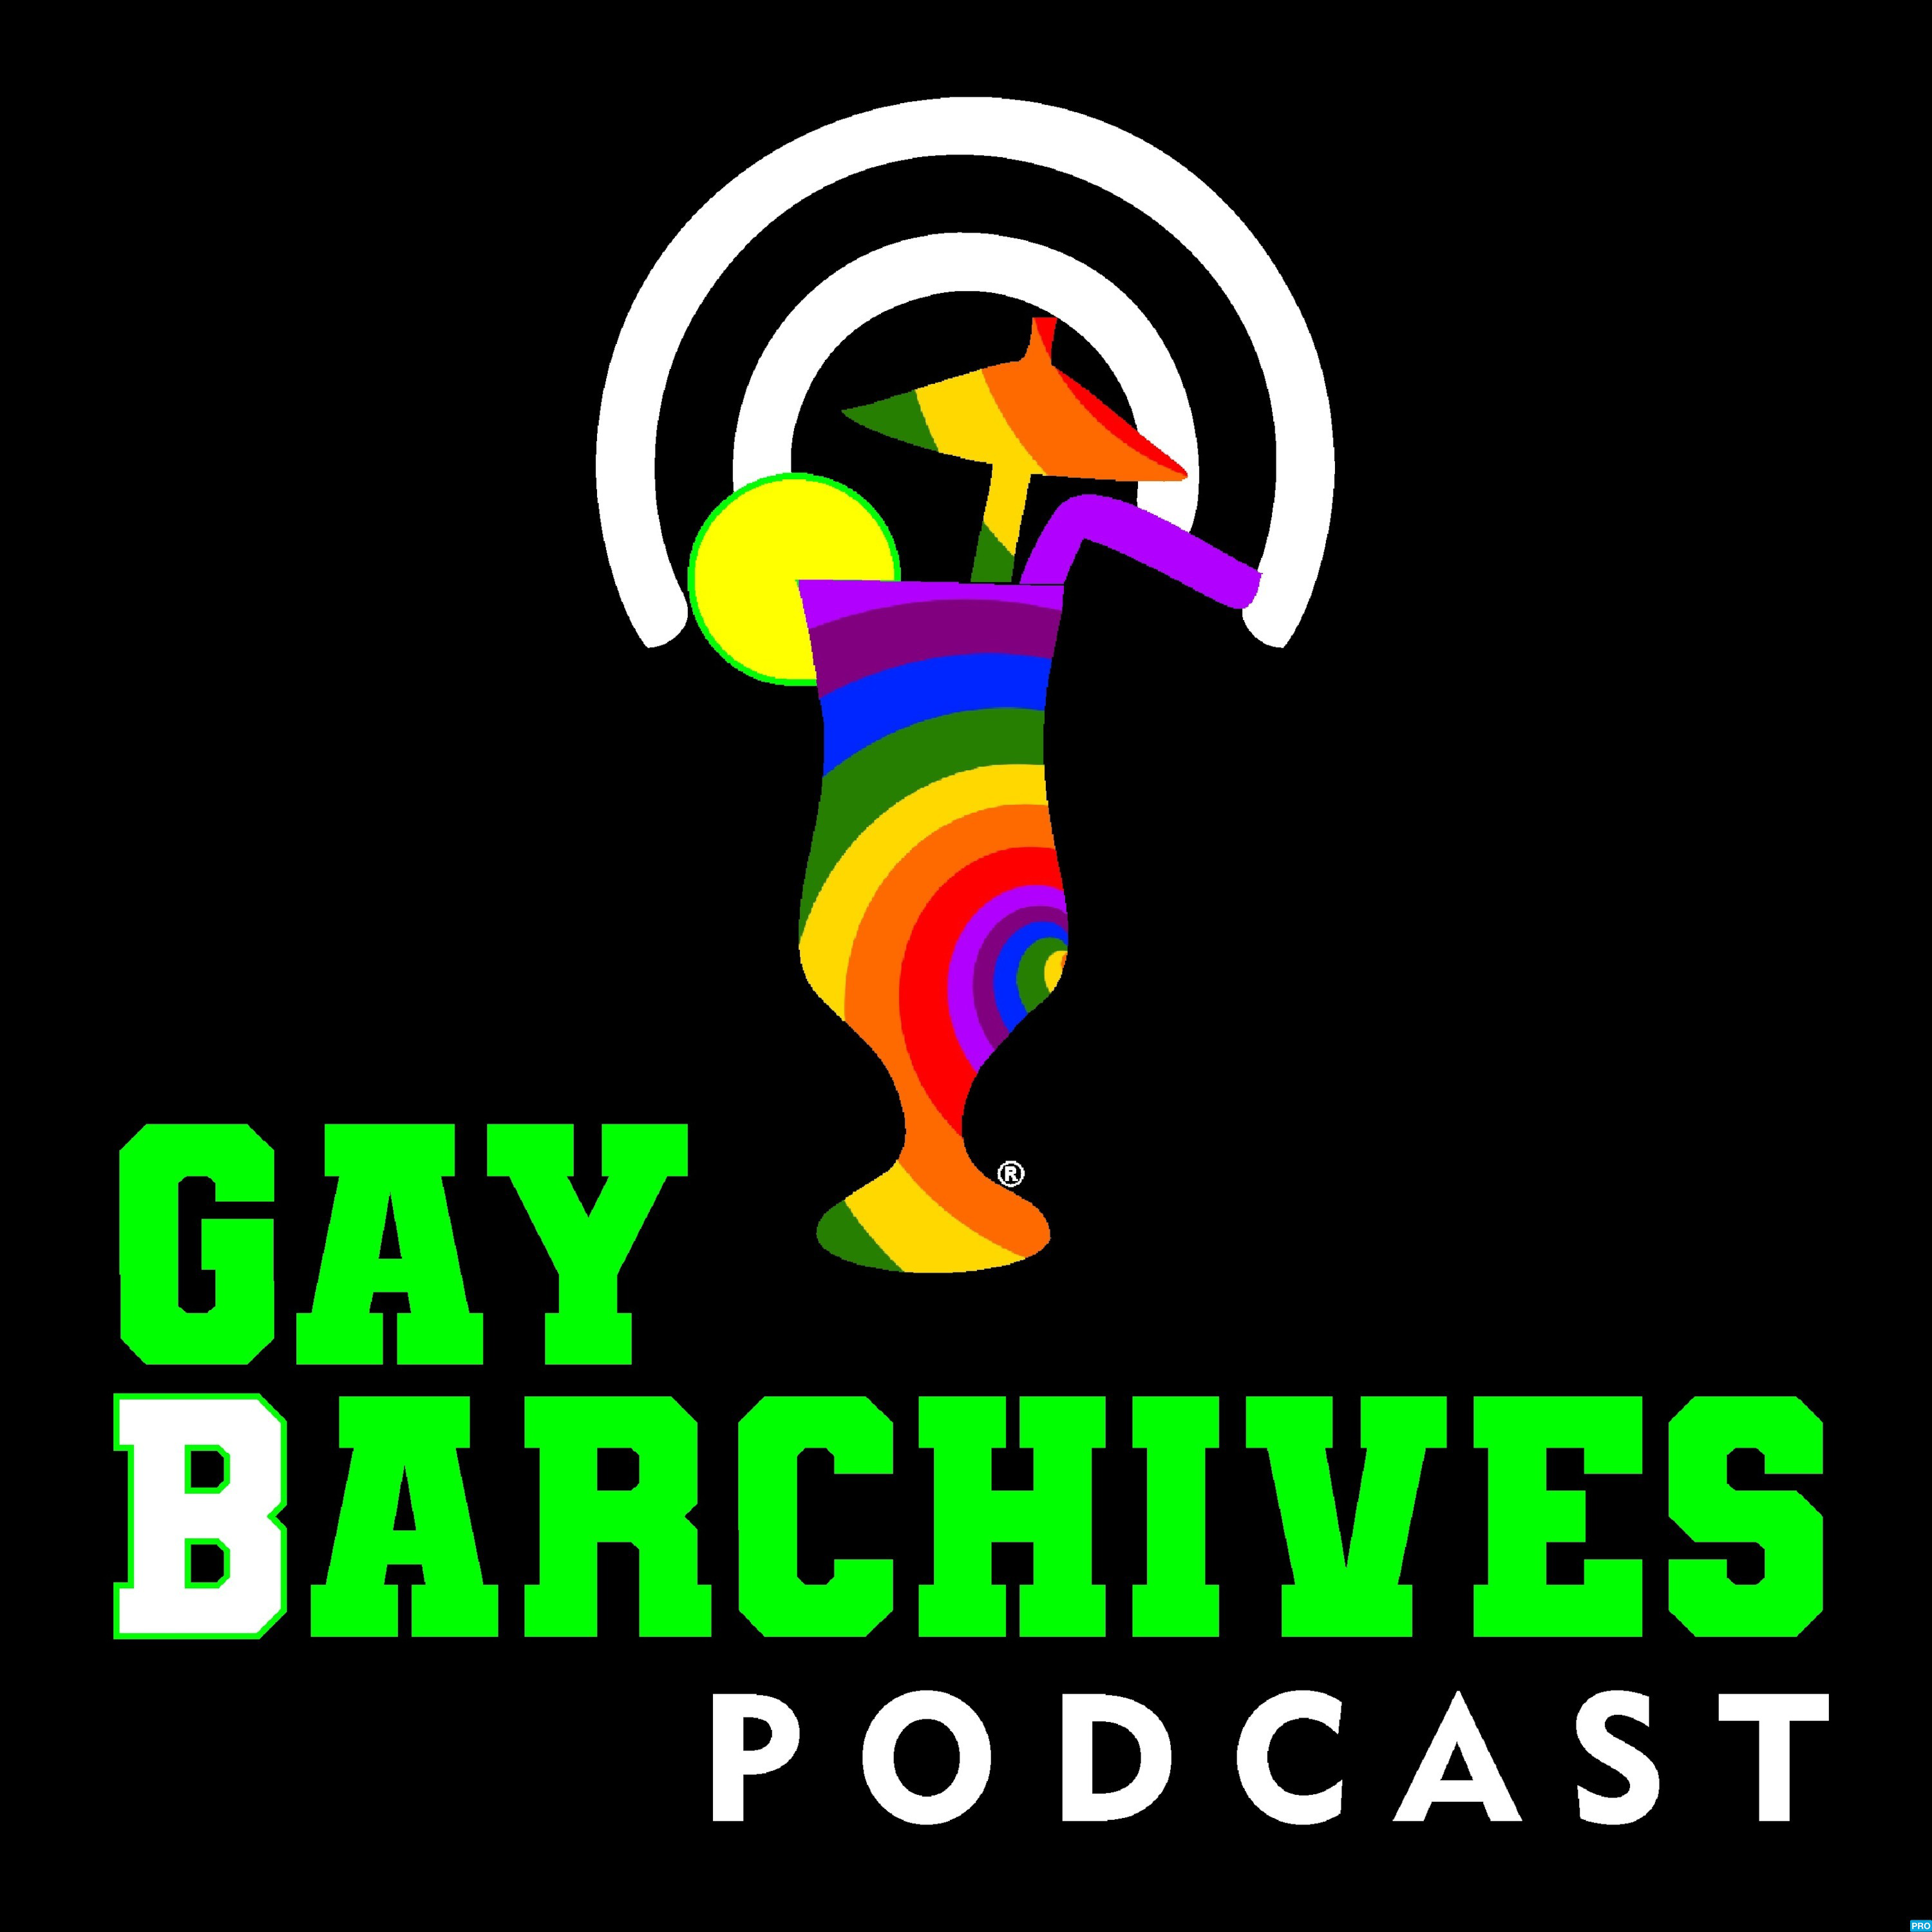 A highlight from Episode 39: Russell Mania and the Orlando/Central Florida Bar Scene